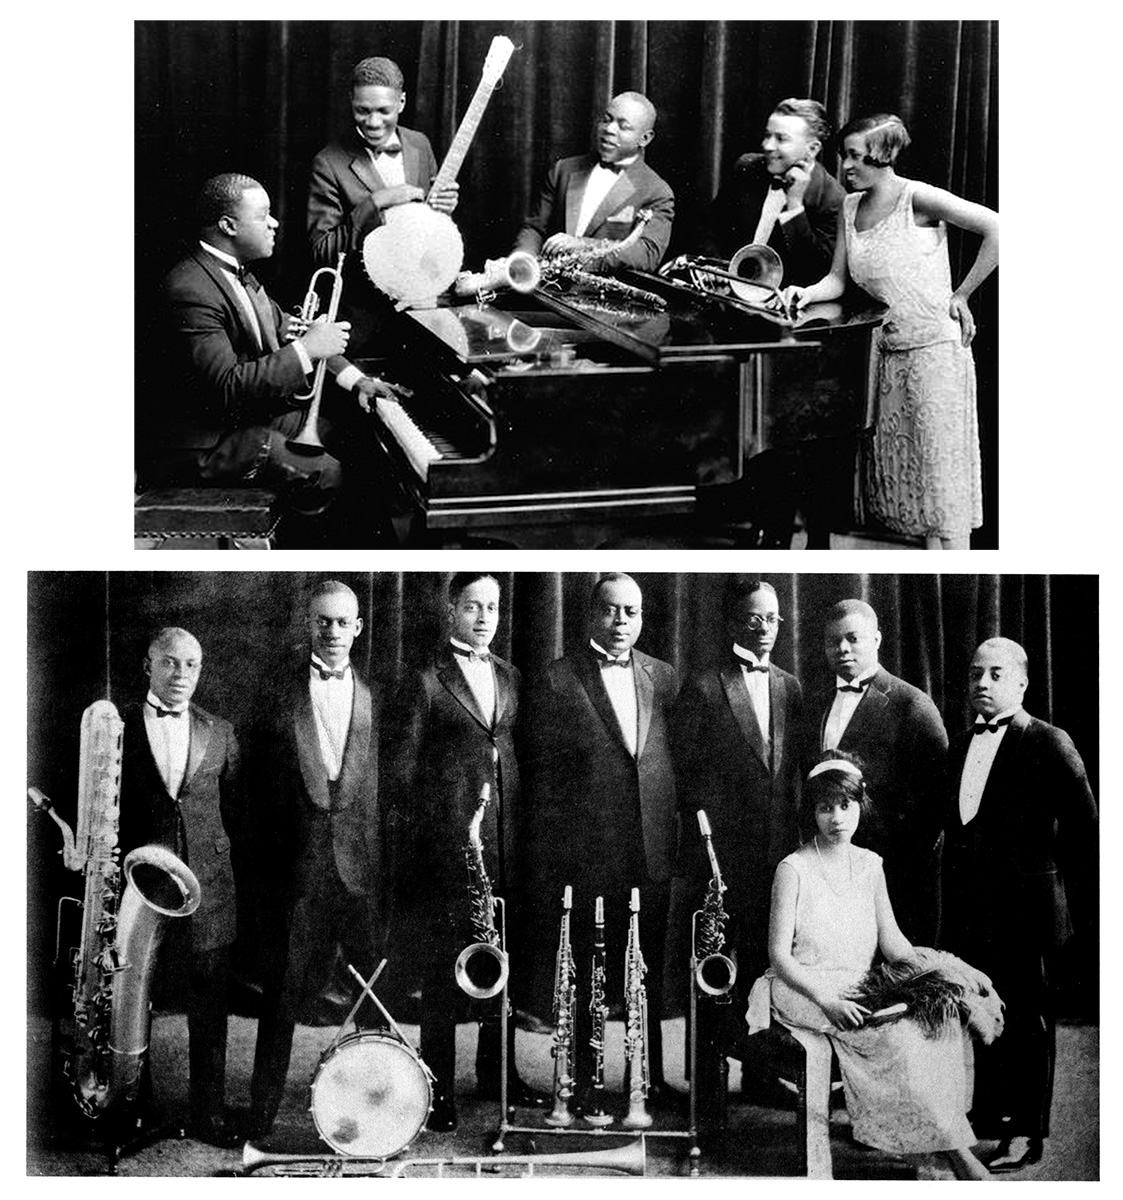 Dynamic Women of Early Jazz and Classic Blues, Part 2 of 2